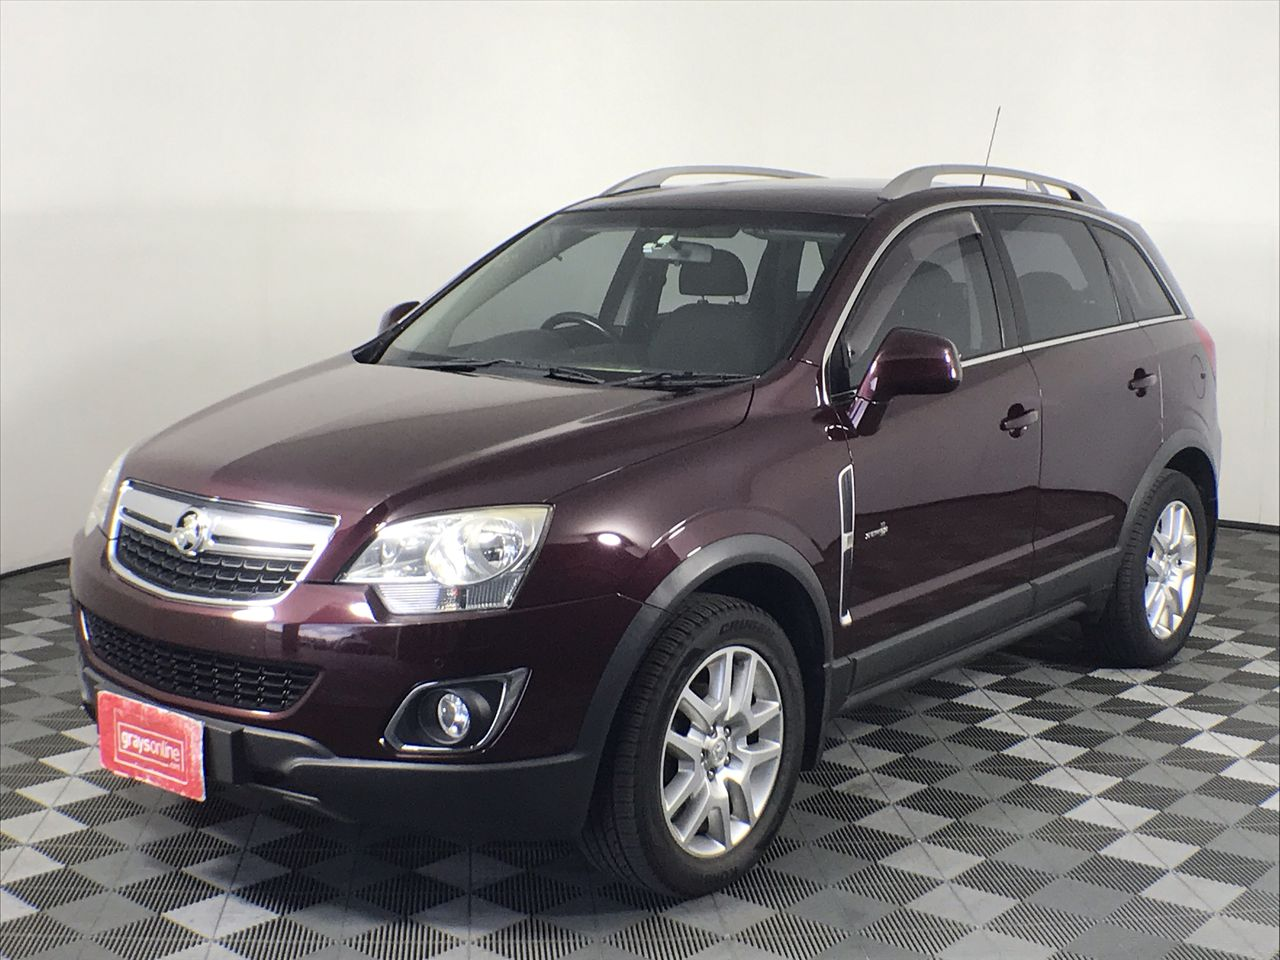 2012 Holden Captiva 5 (4x4) CG II Turbo Diesel Automatic Wagon